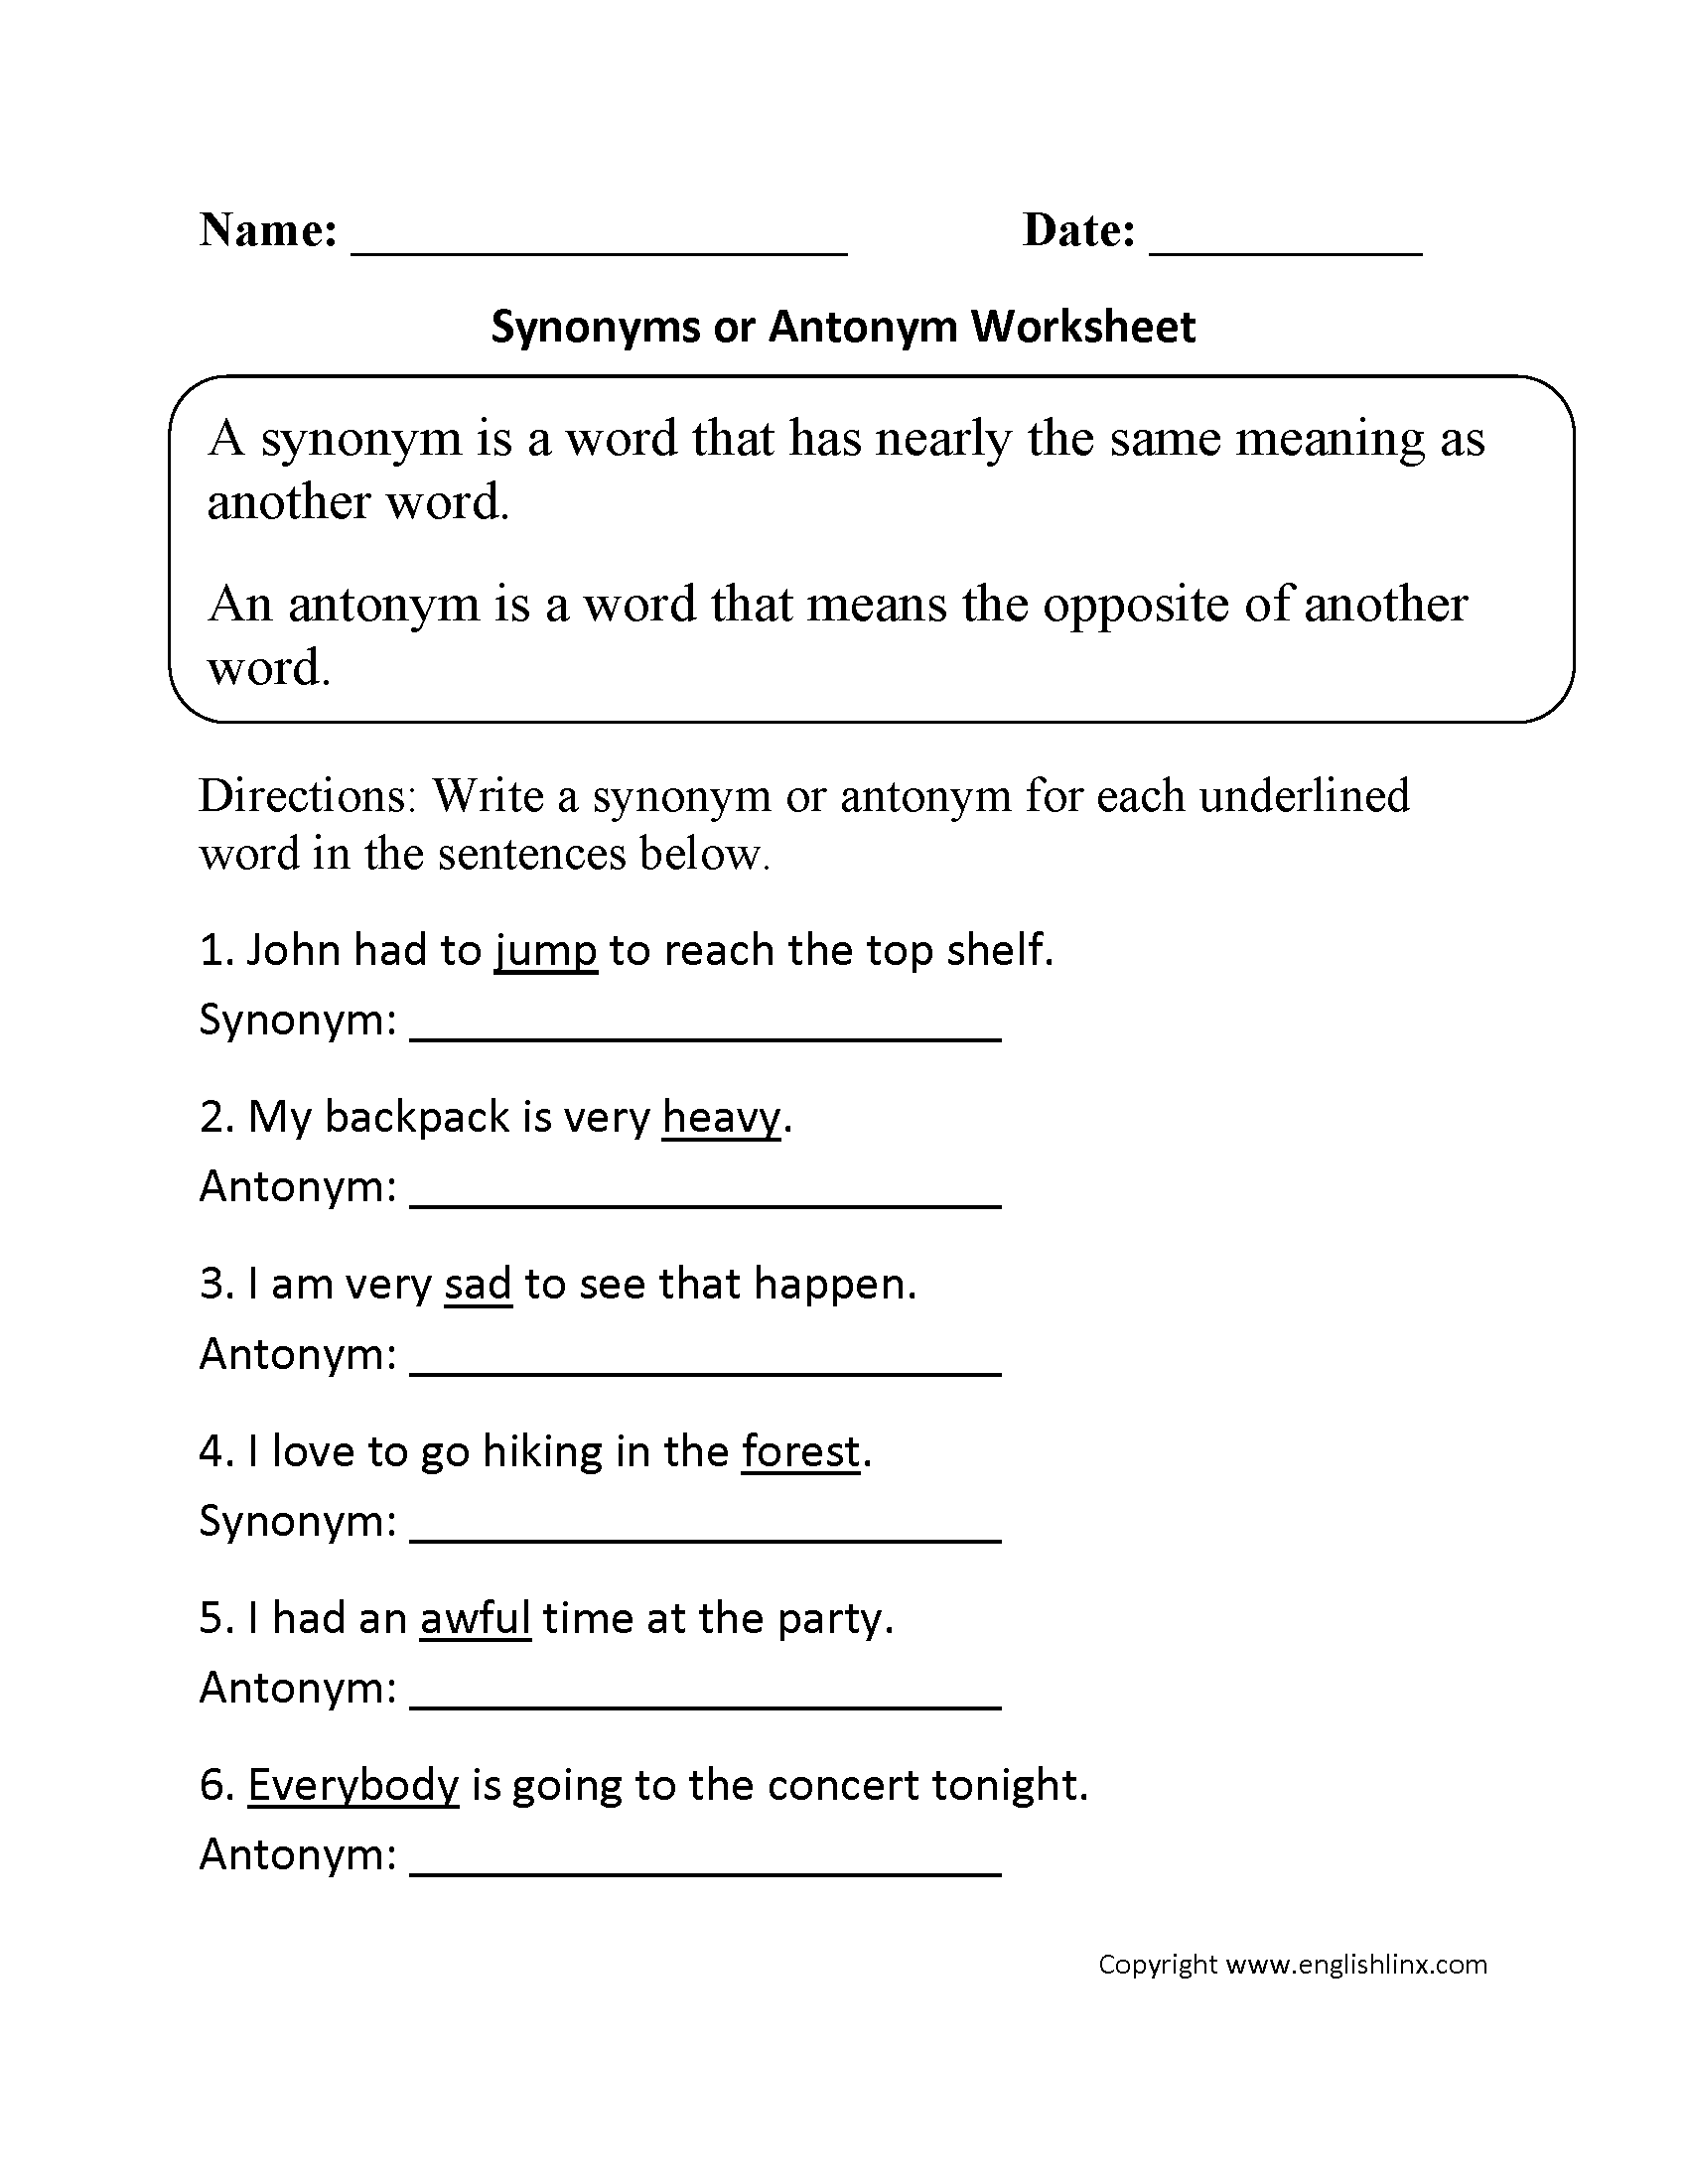 worksheet Antonym And Synonym Worksheets vocabulary worksheets synonym and antonym or worksheet